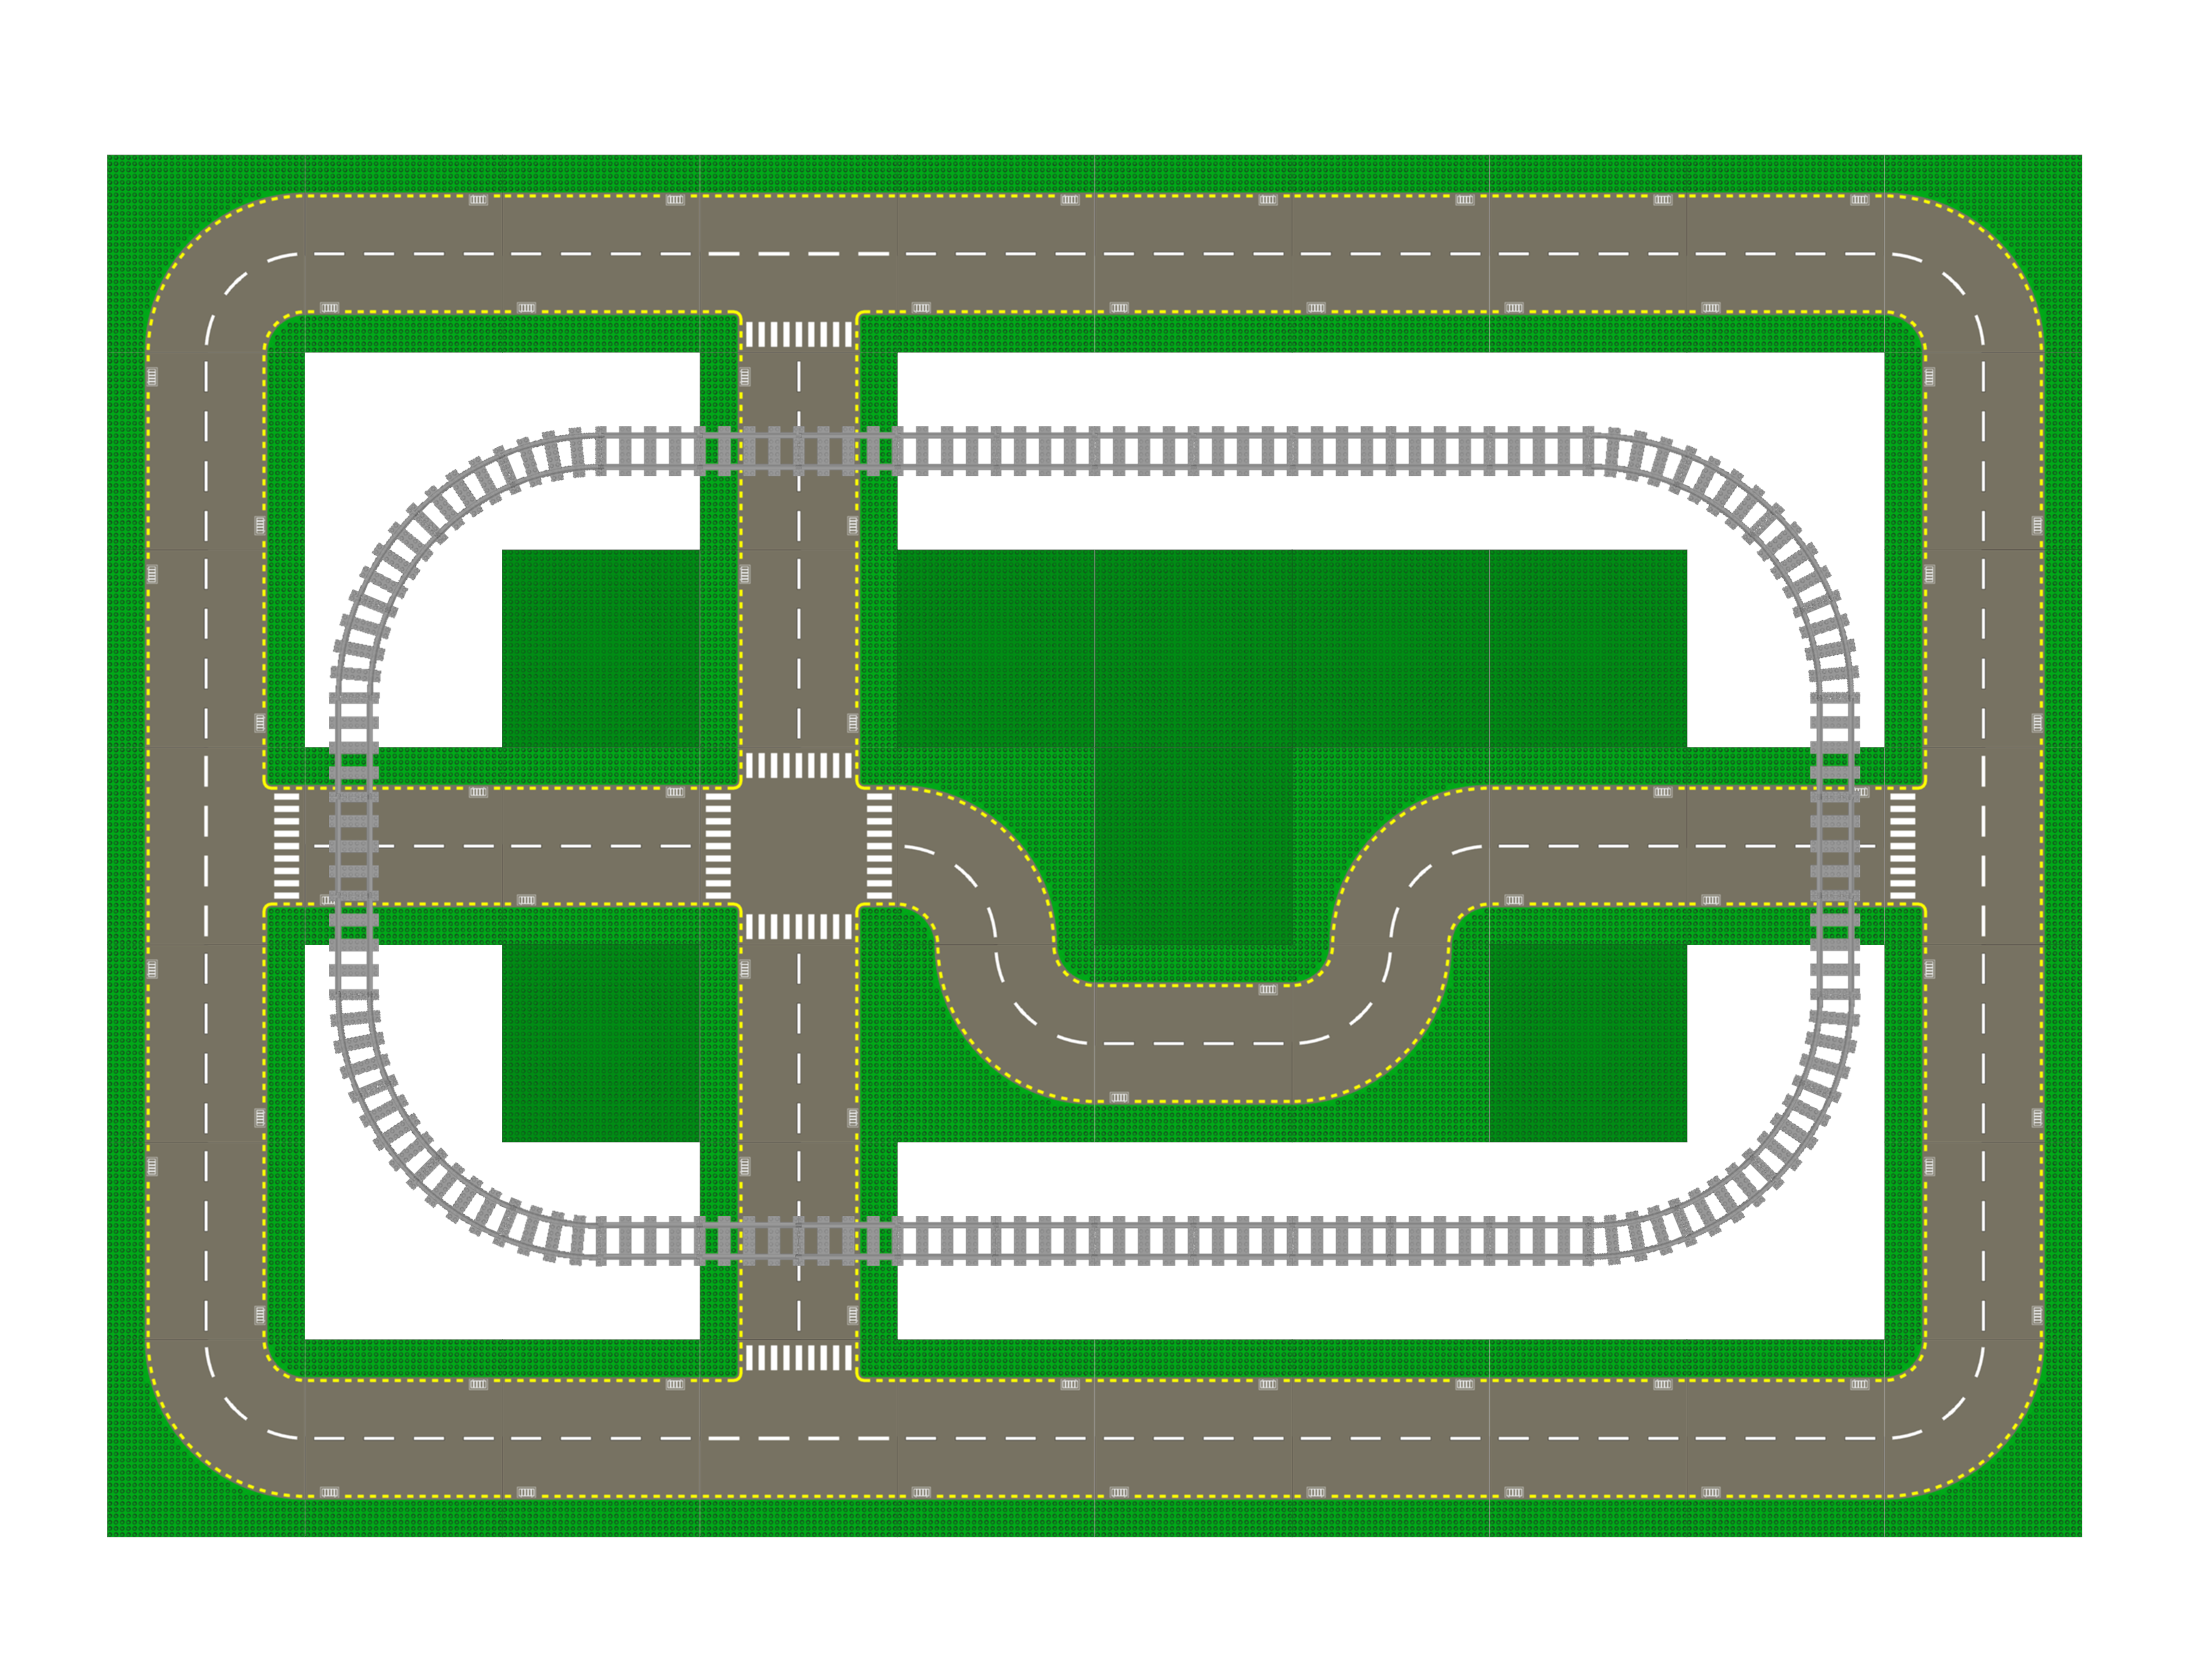 Link to the image of the layout